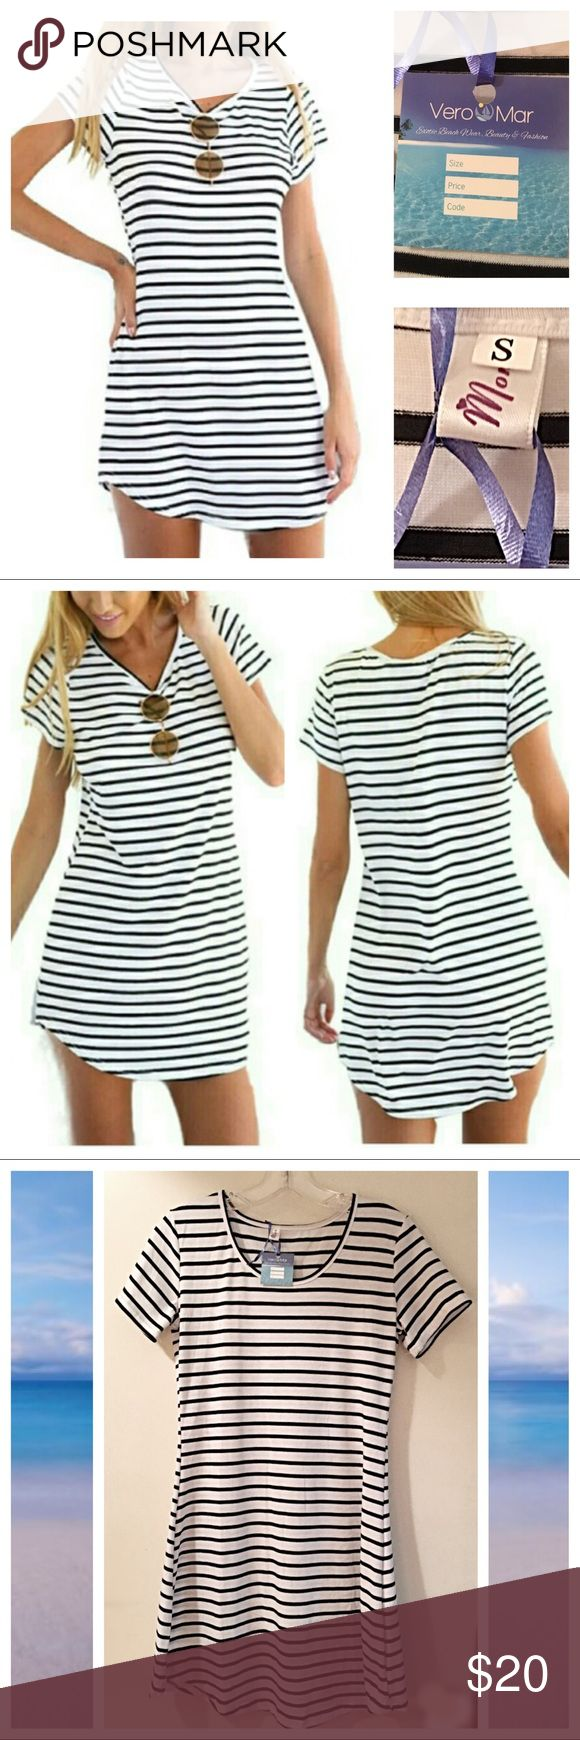 NWT Striped Beach Dress!!⛱ Brand new white and blue striped beach dress! Perfect as a bathing suit cover up or can be worn out after a day at the beach! 🌴☀️😎 Dresses Mini